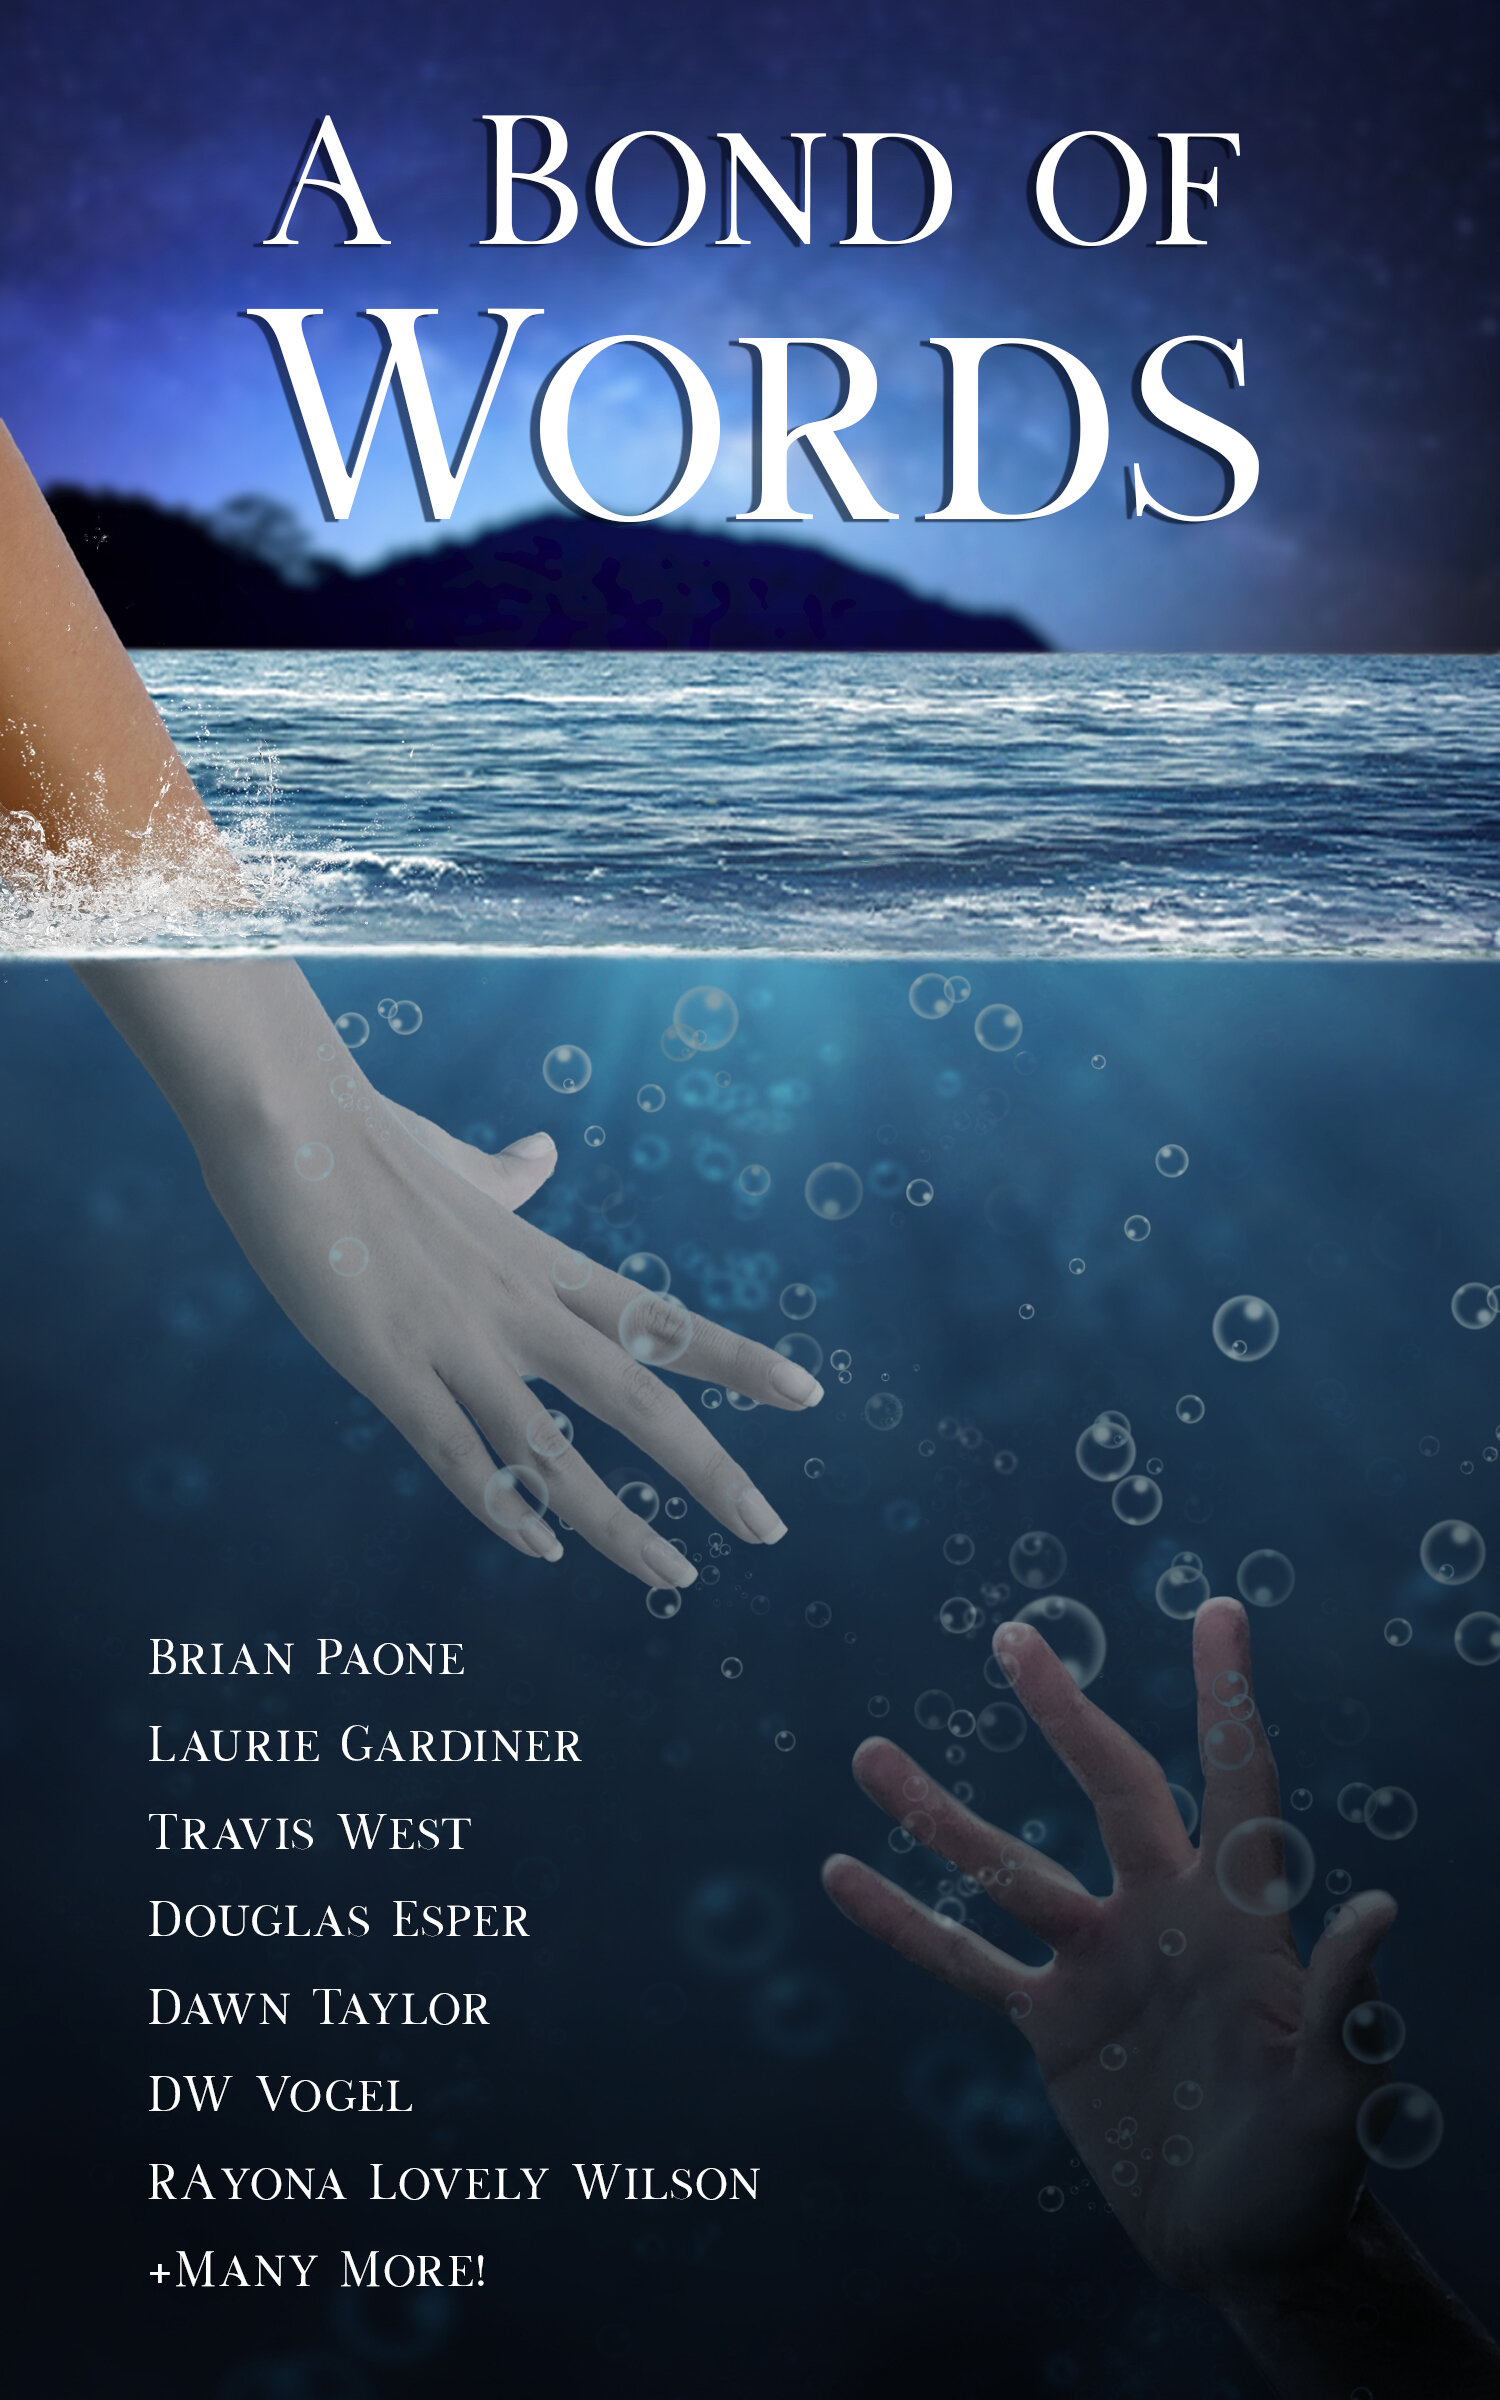 2019's installment,  A Bond of Words,  includes 29 authors who wrote short stories centered around creating or severing a bond with someone or something else.